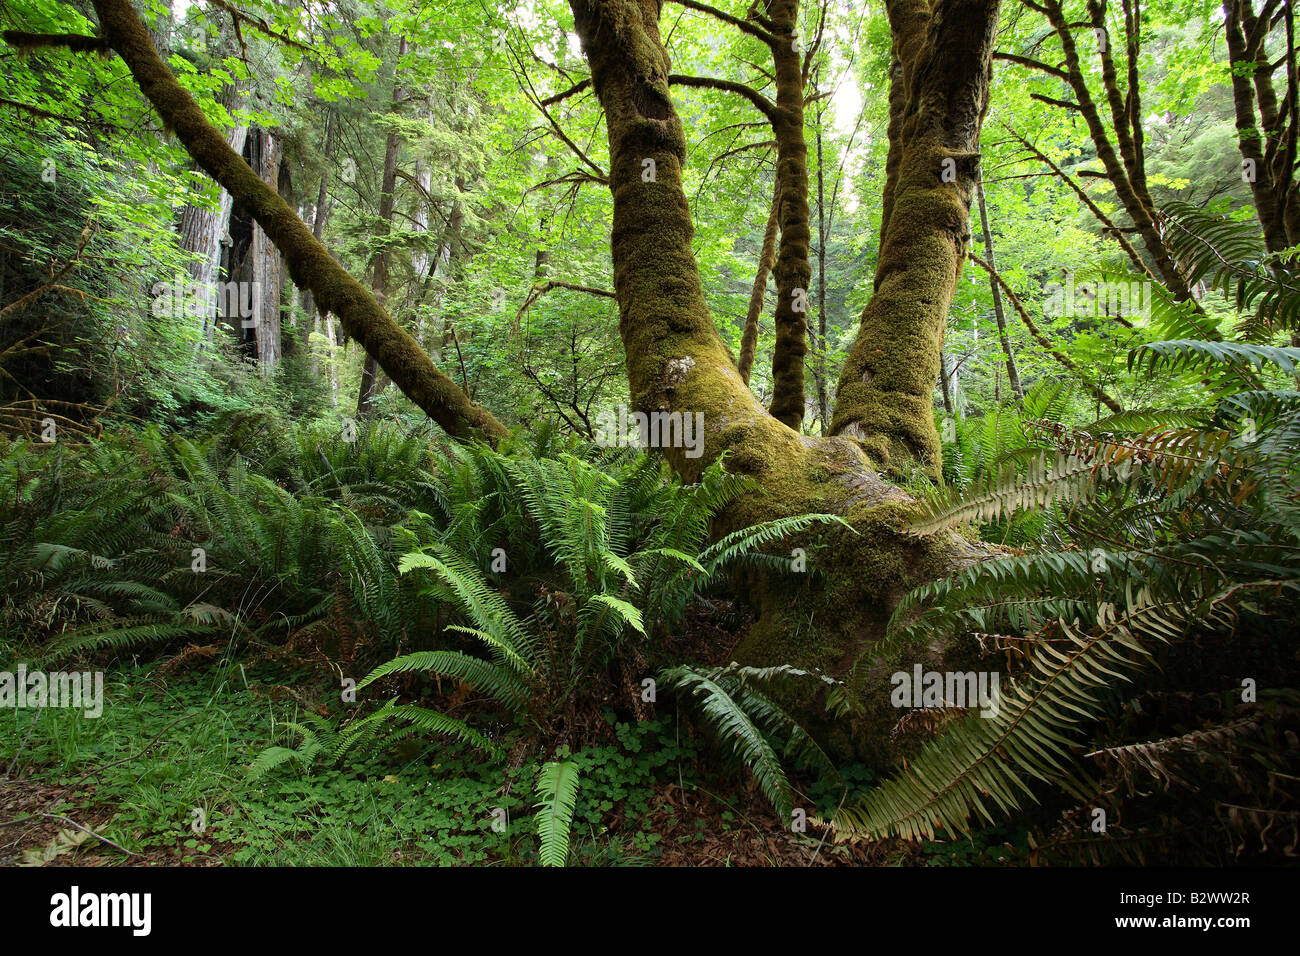 Rainforest Moss-covered trees - Stock Image